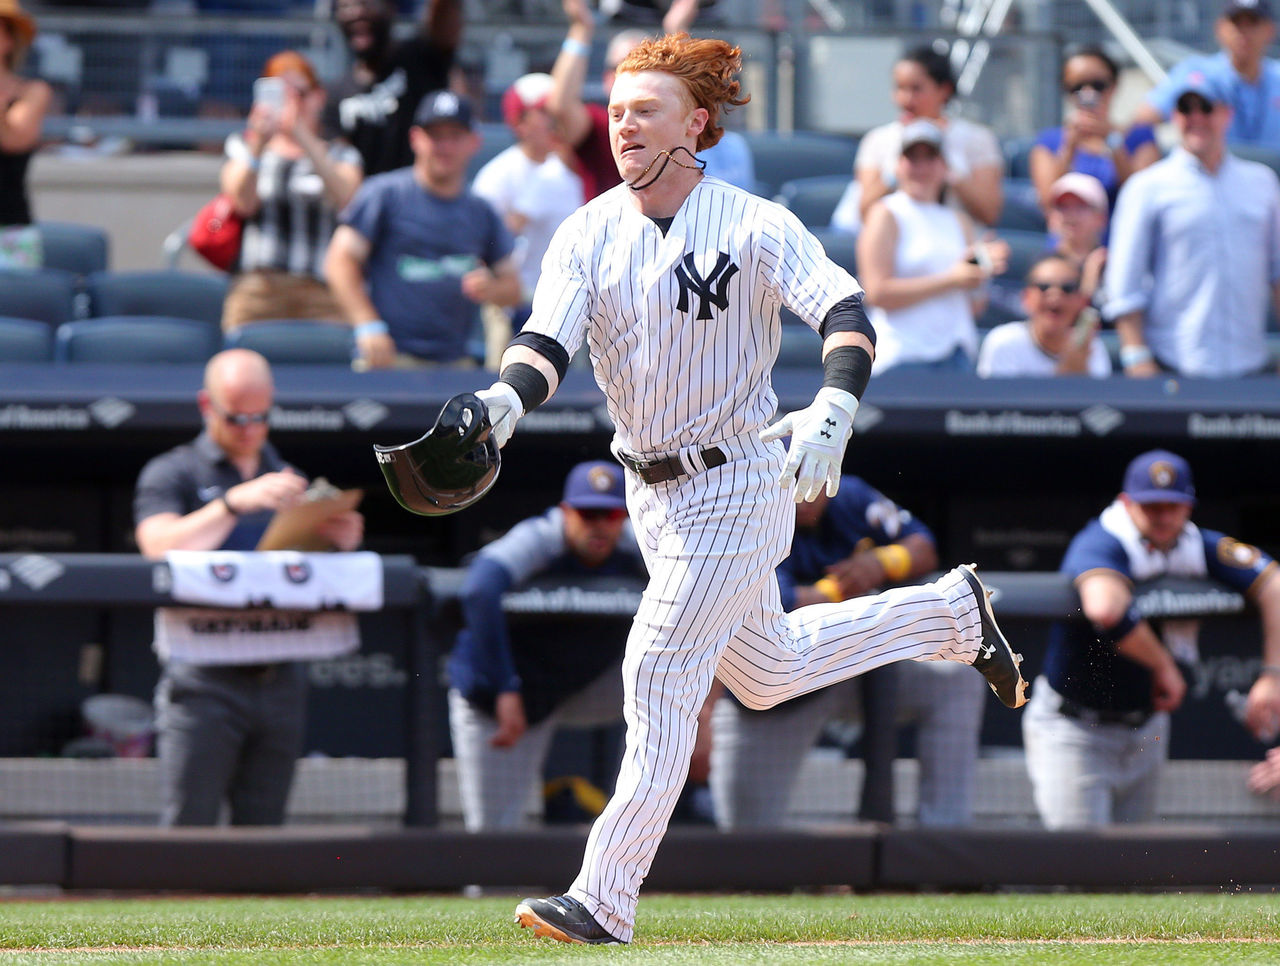 Cropped 2017 07 08t200603z 912079273 nocid rtrmadp 3 mlb milwaukee brewers at new york yankees